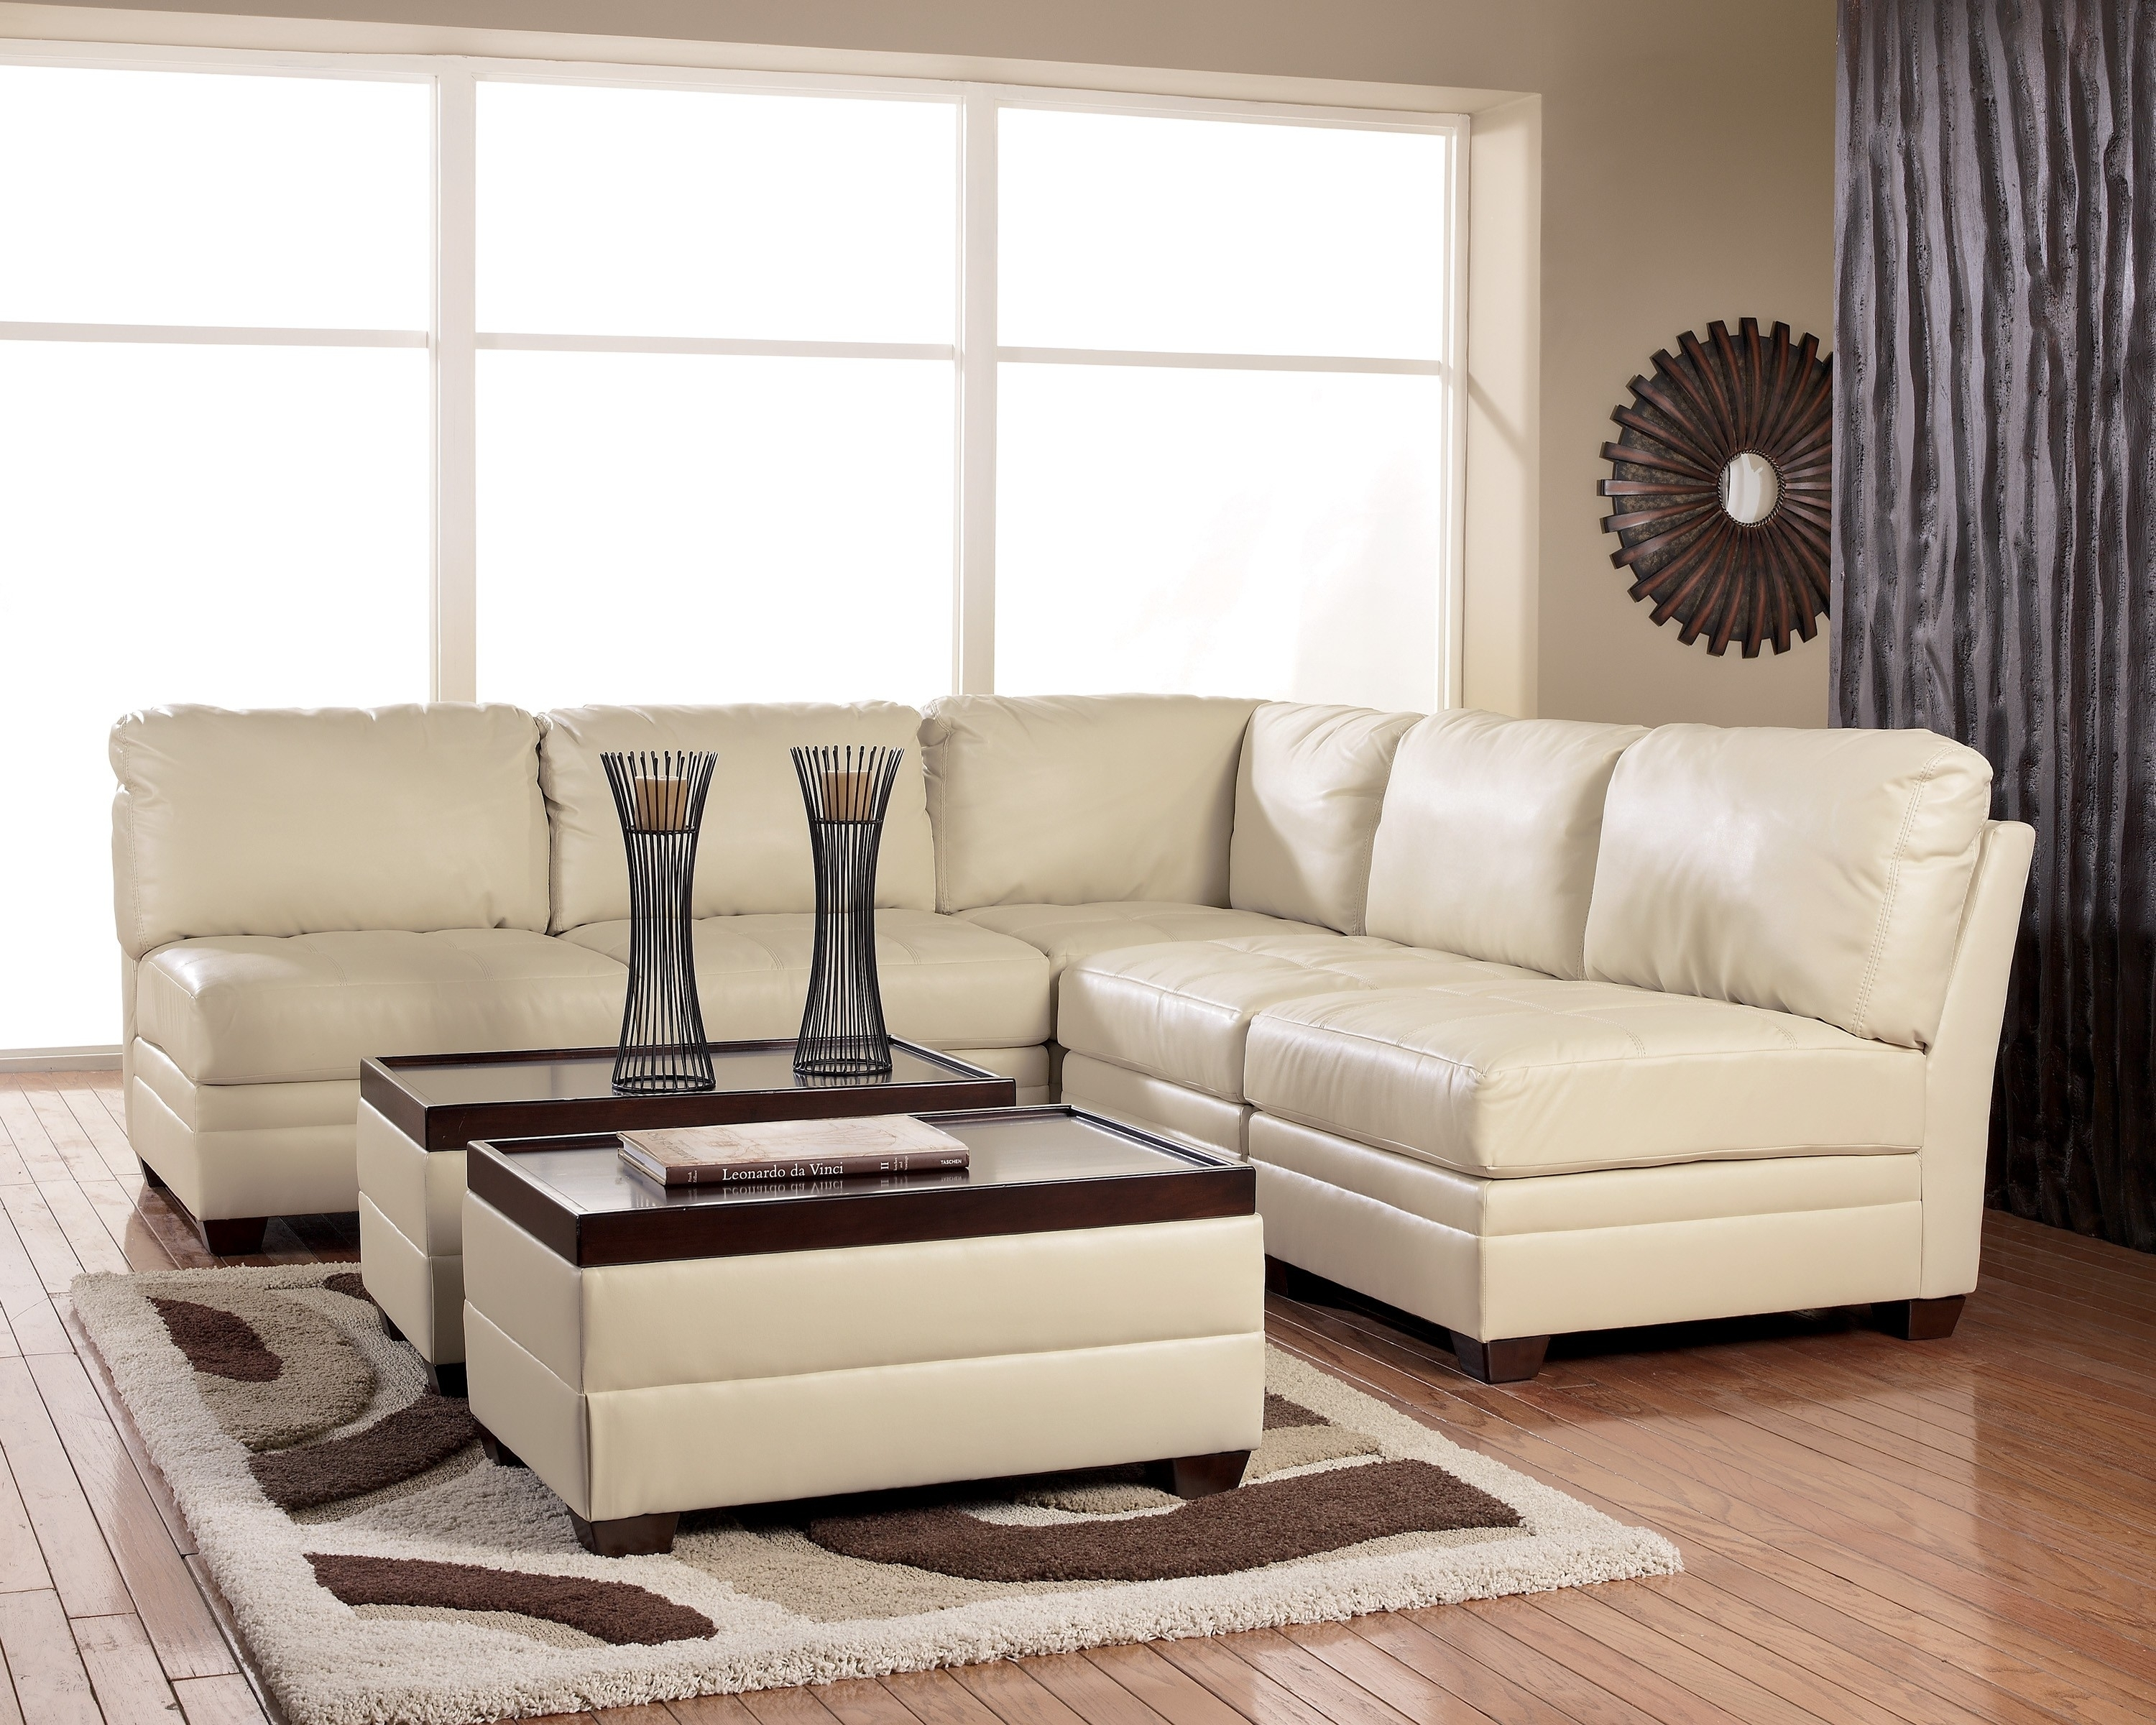 Living Room : Sectional Sofas From Ashley Furniture Sectional Sofas Regarding Sectional Sofas At Ashley (View 5 of 10)